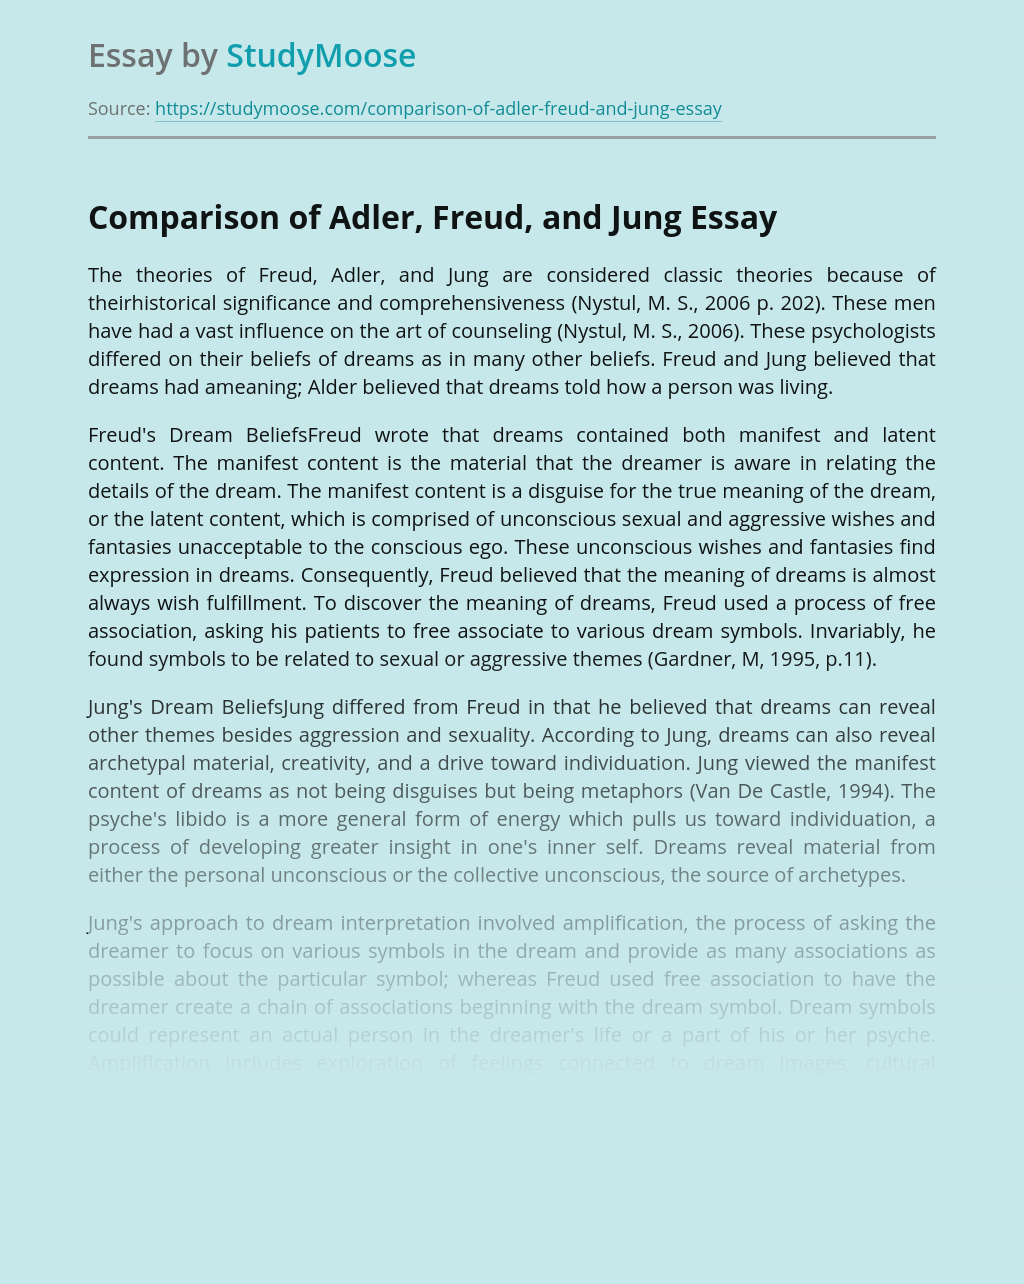 The Theories of Freud, Jung and Adler